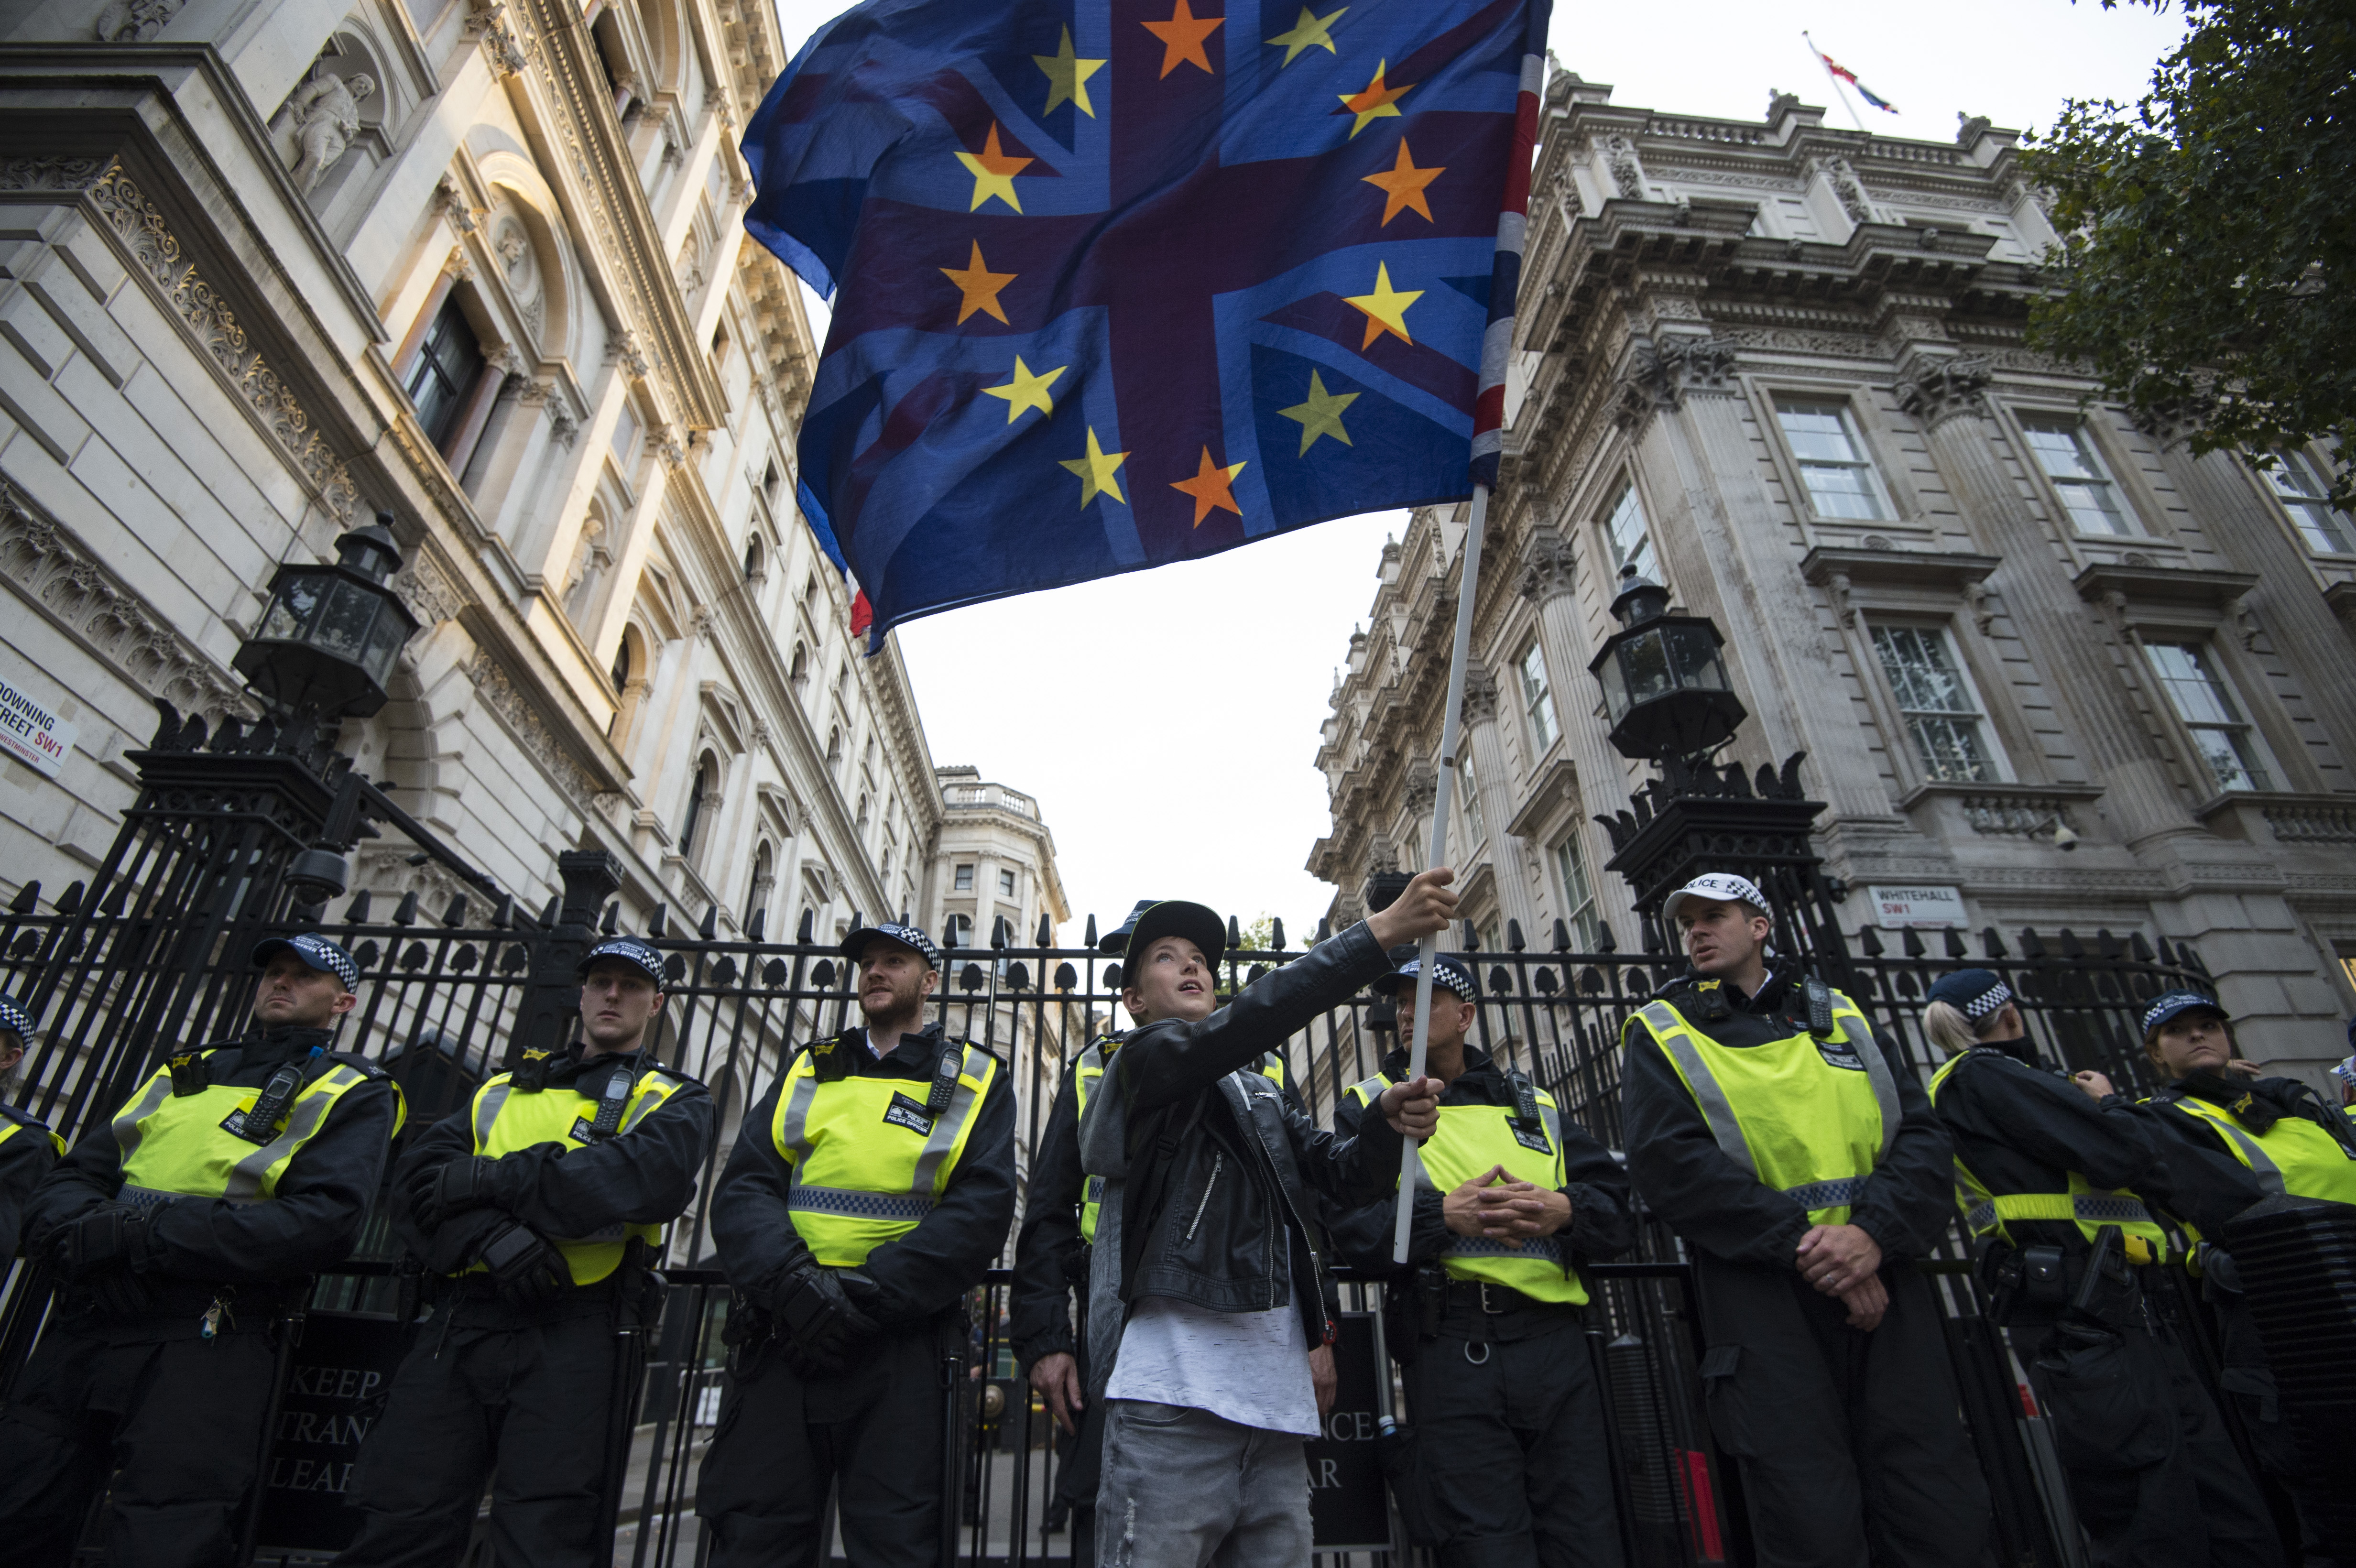 Kayden, 11, waves an EU flag and Union Jack in front of a line of police officers outside Downing Street, London, to demonstrate against Prime Minister Boris Johnson temporarily closing down the Commons from the second week of September until October 14 when there will be a Queen's Speech to open a new session of Parliament.